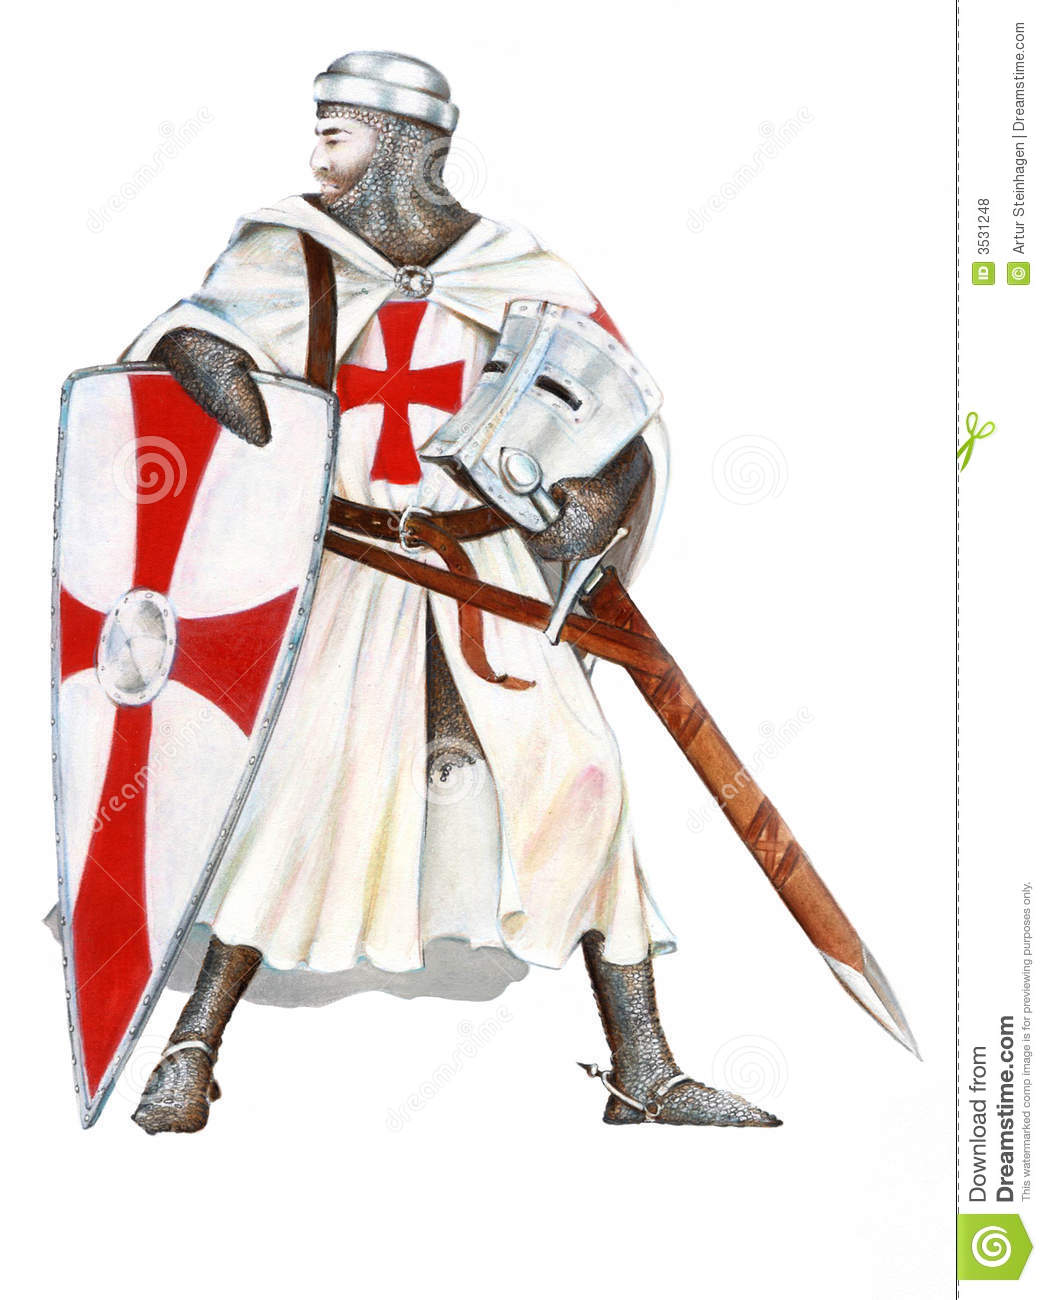 Knights templar stock illustration illustration of sword for The knights templat